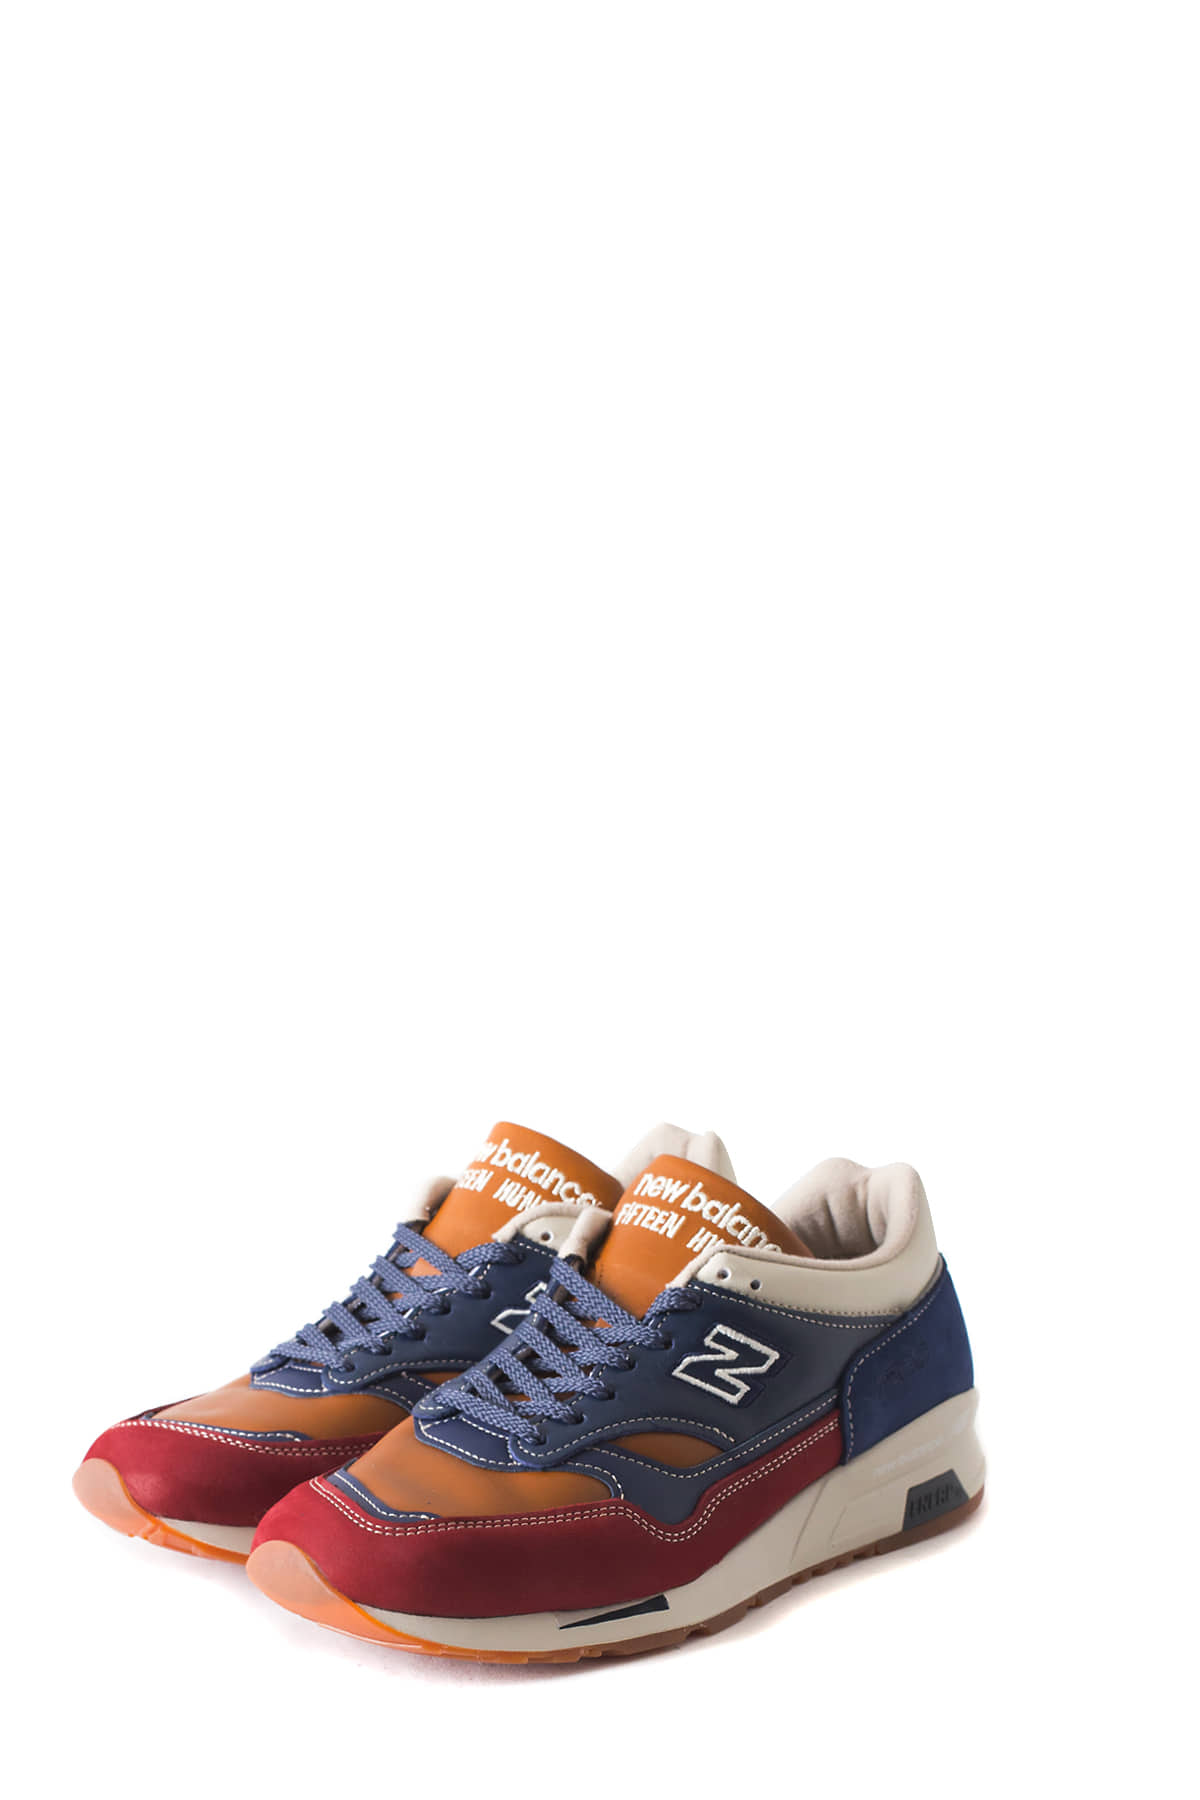 New Balance : M1500MGC (Brown)